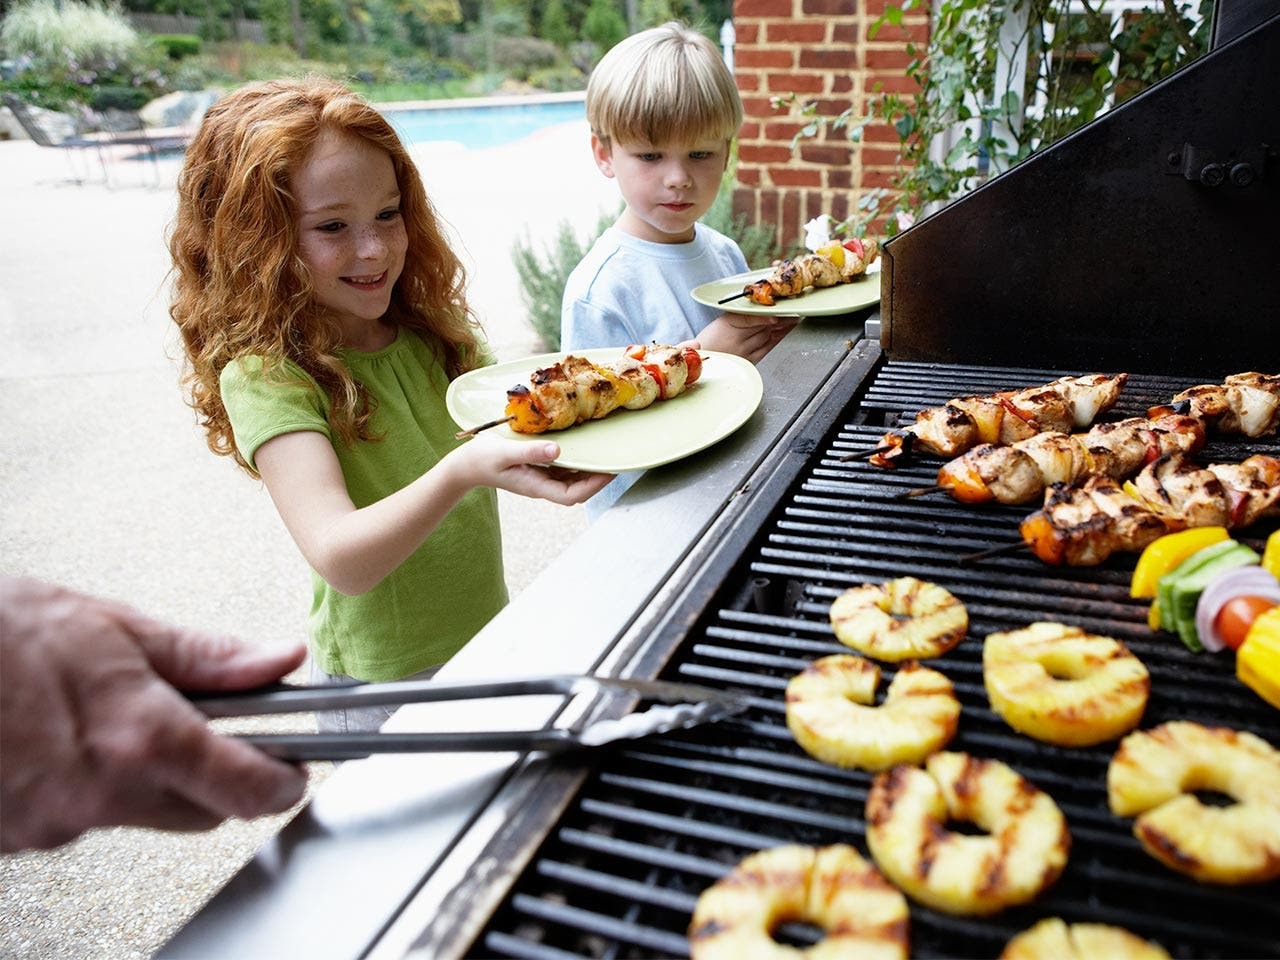 Kids taking food from grill